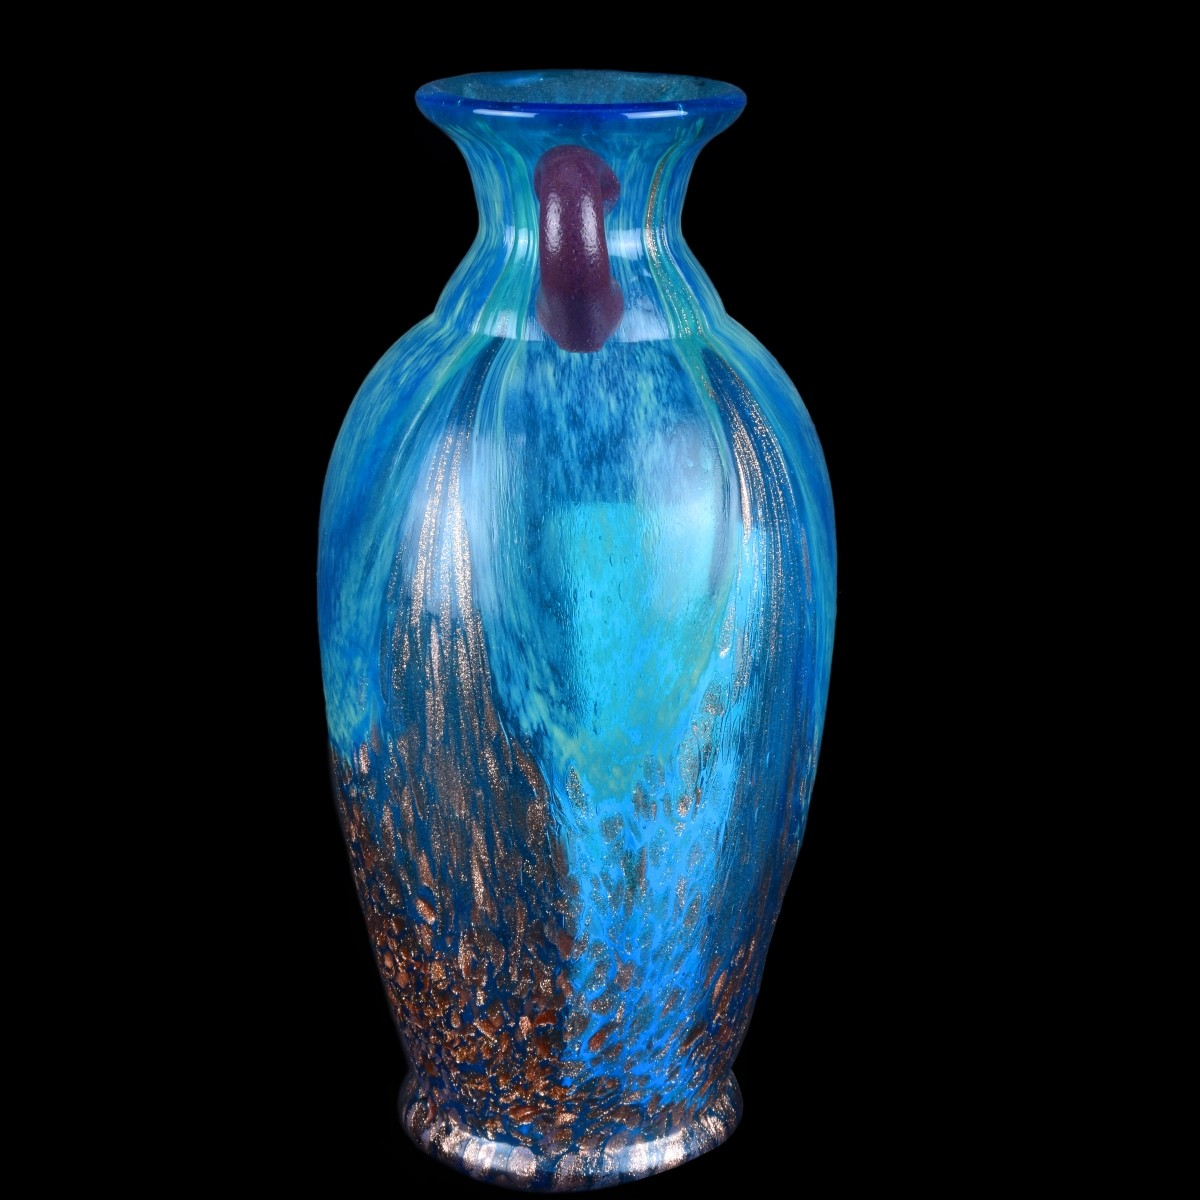 Three (3) Contemporary Art Glass Vases